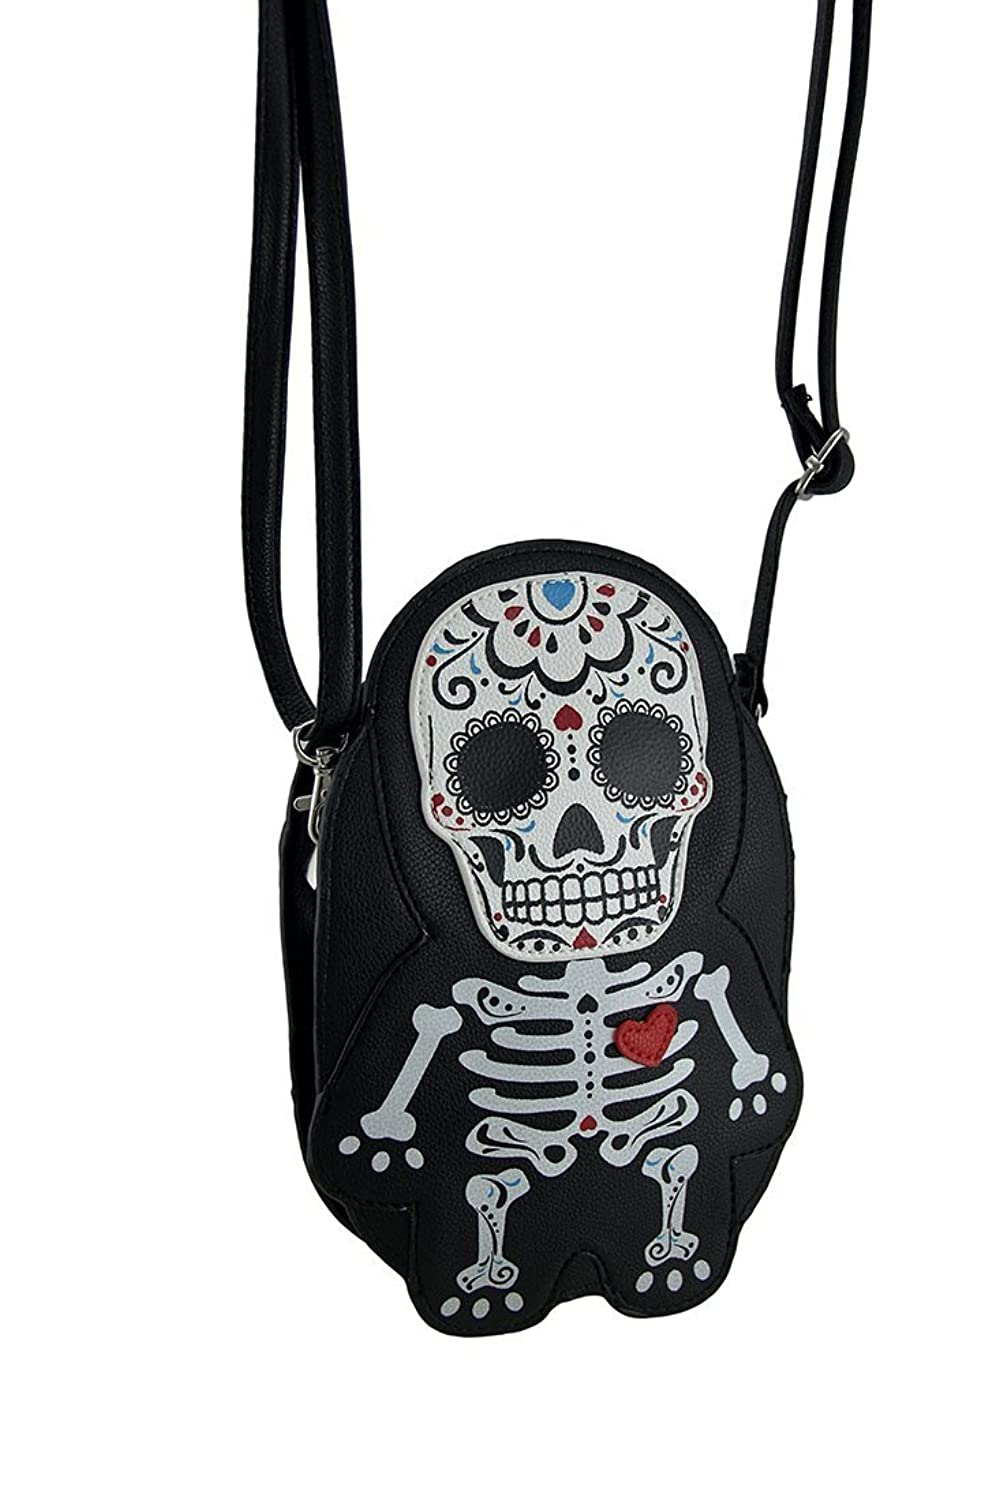 Sleepyville critters day of the dead sugar skeleton cross for Day of the dead body jewelry